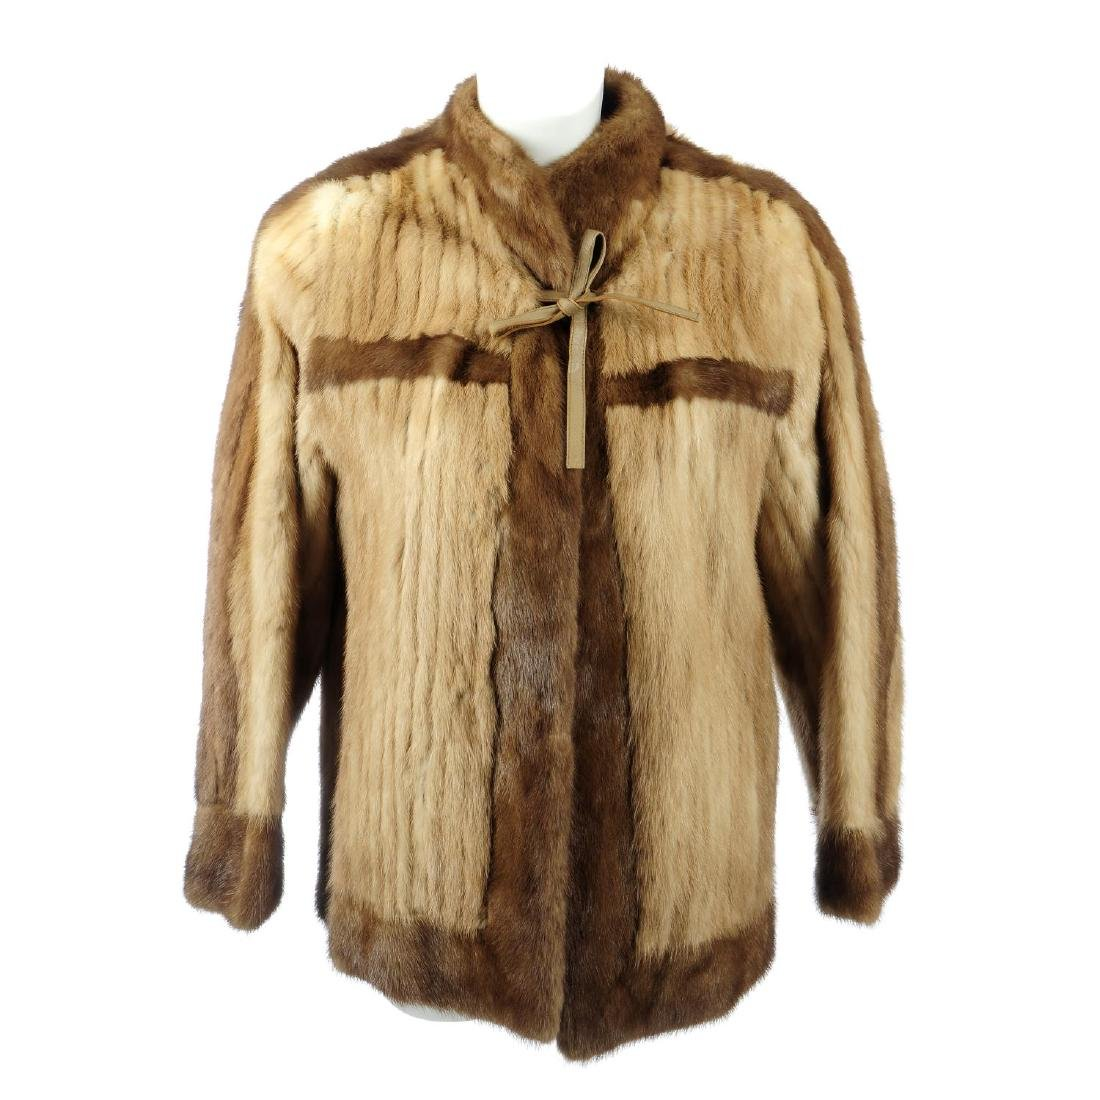 A pieced mink jacket. Crafted from pastel mink tails,